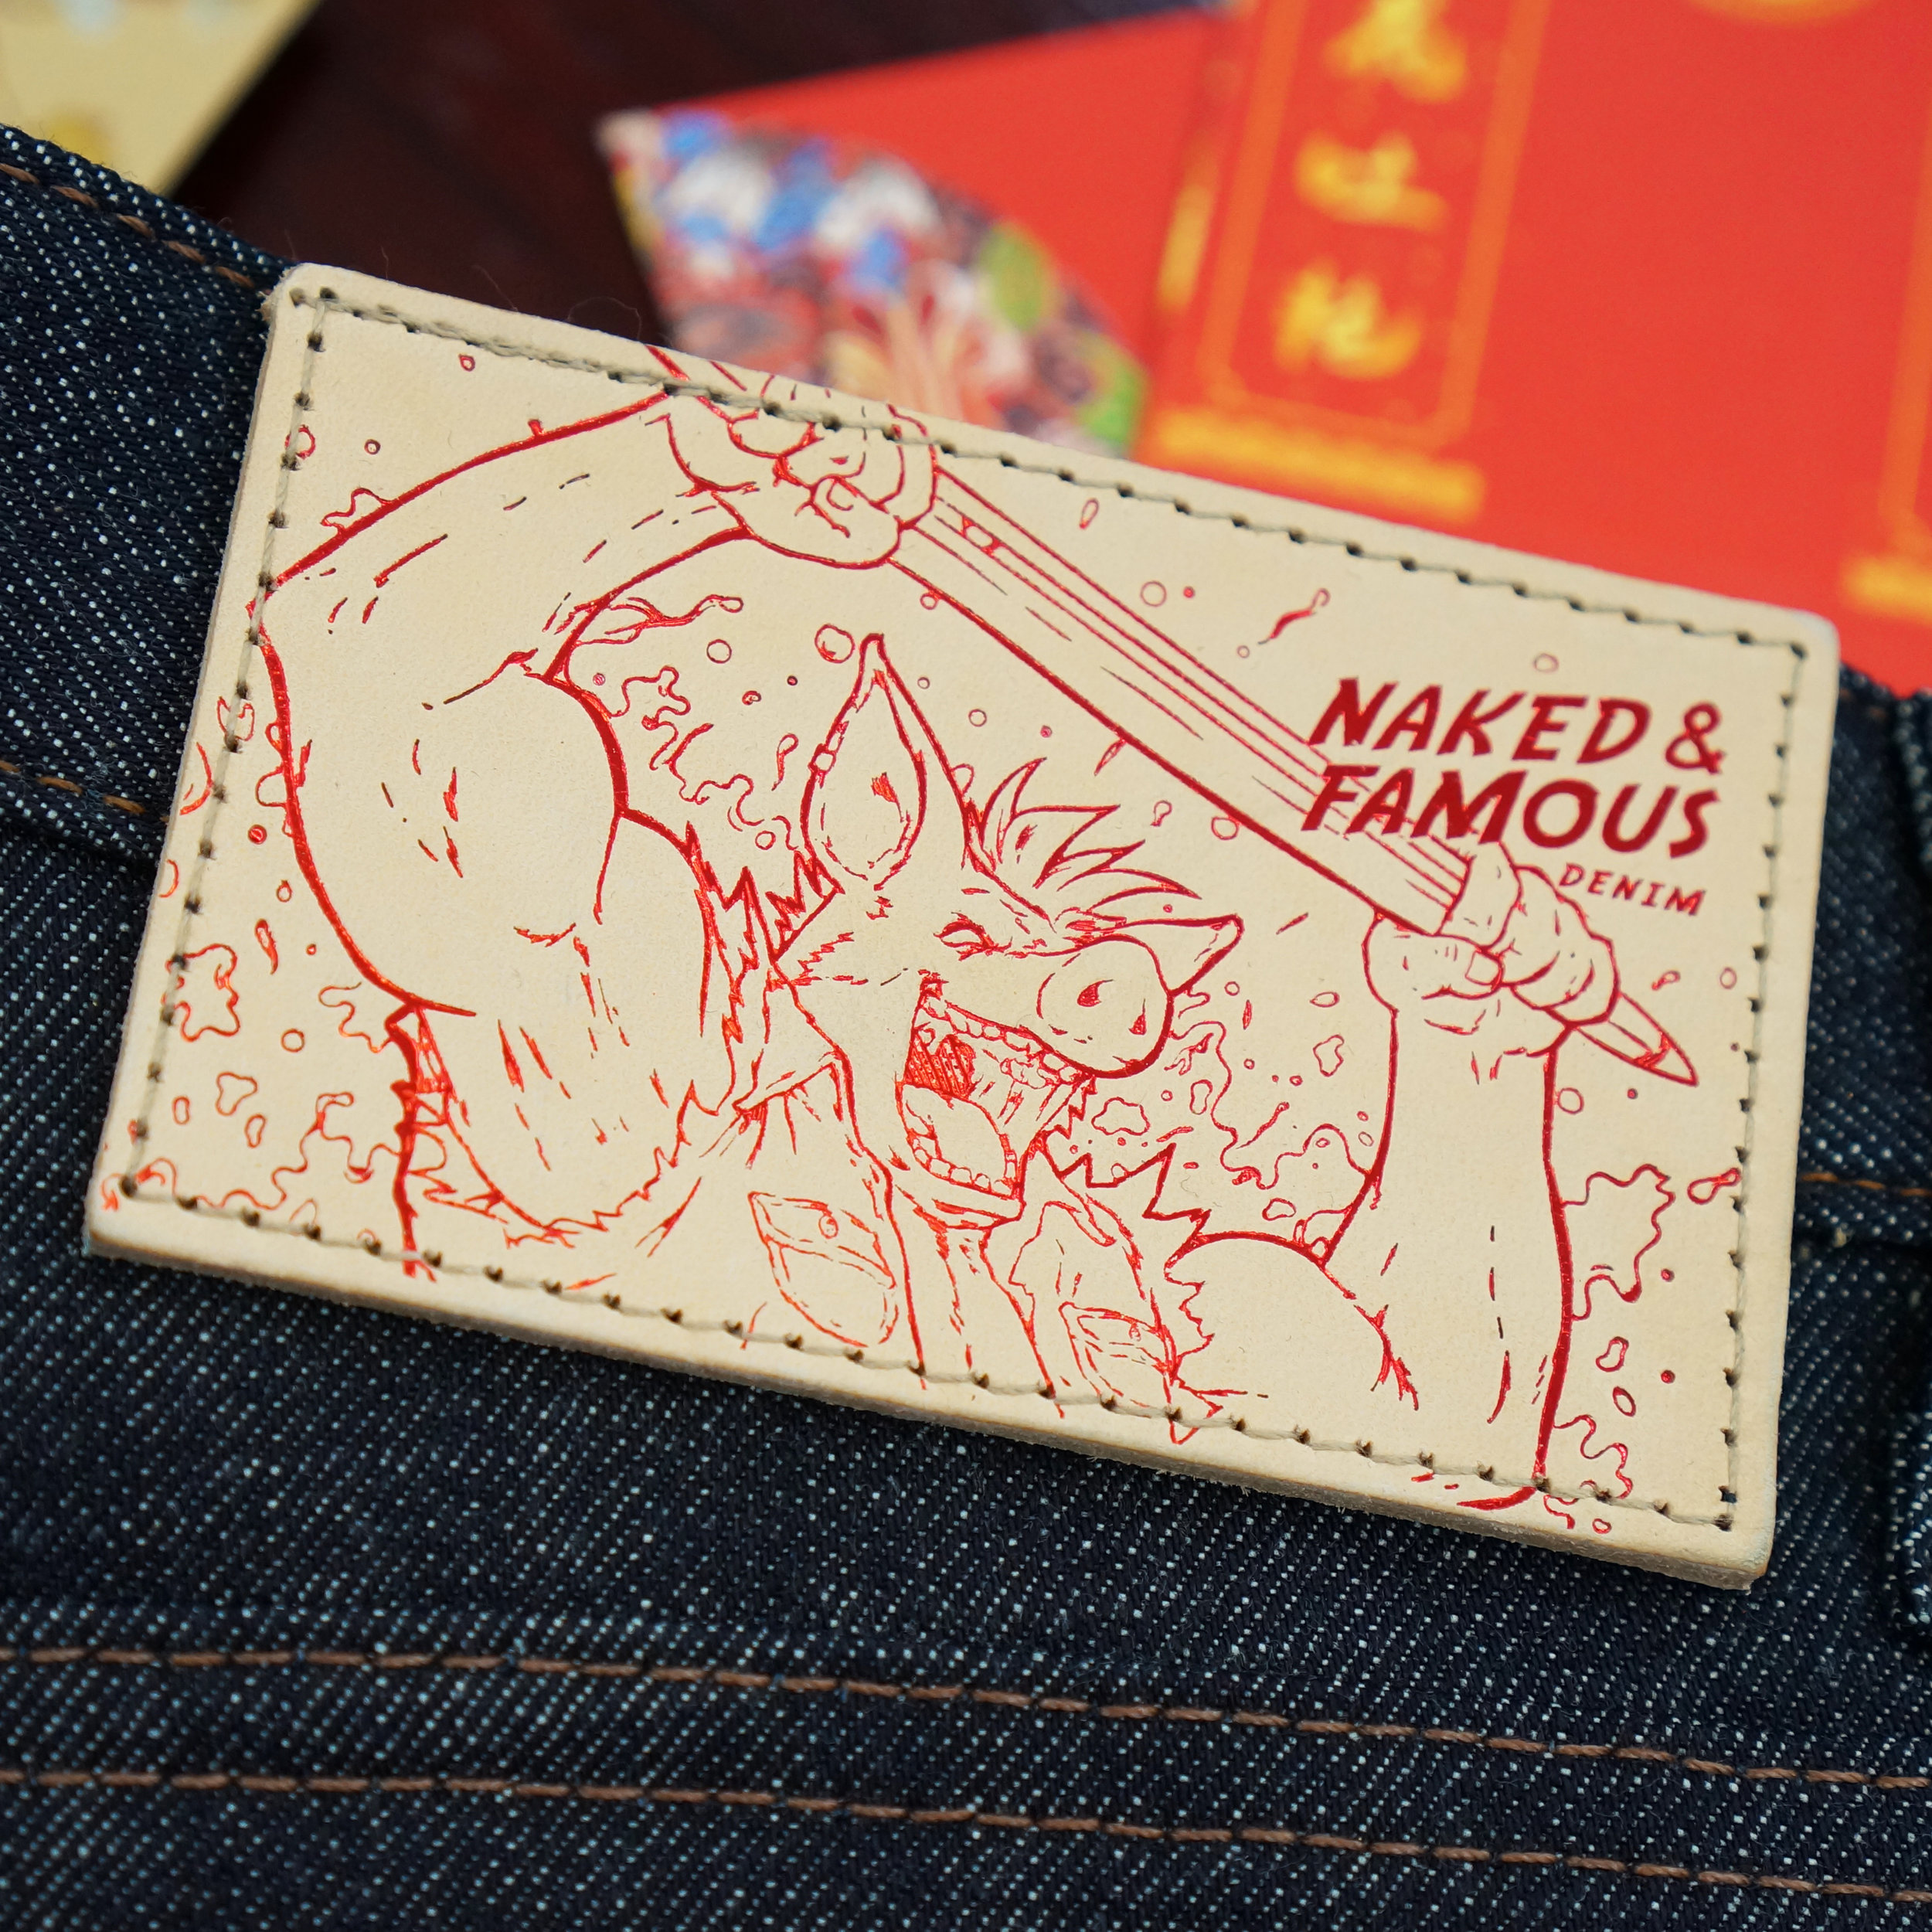 Natural vegetable tan leather patch with red metallic foil print of the Earth Pig holding a shuttle